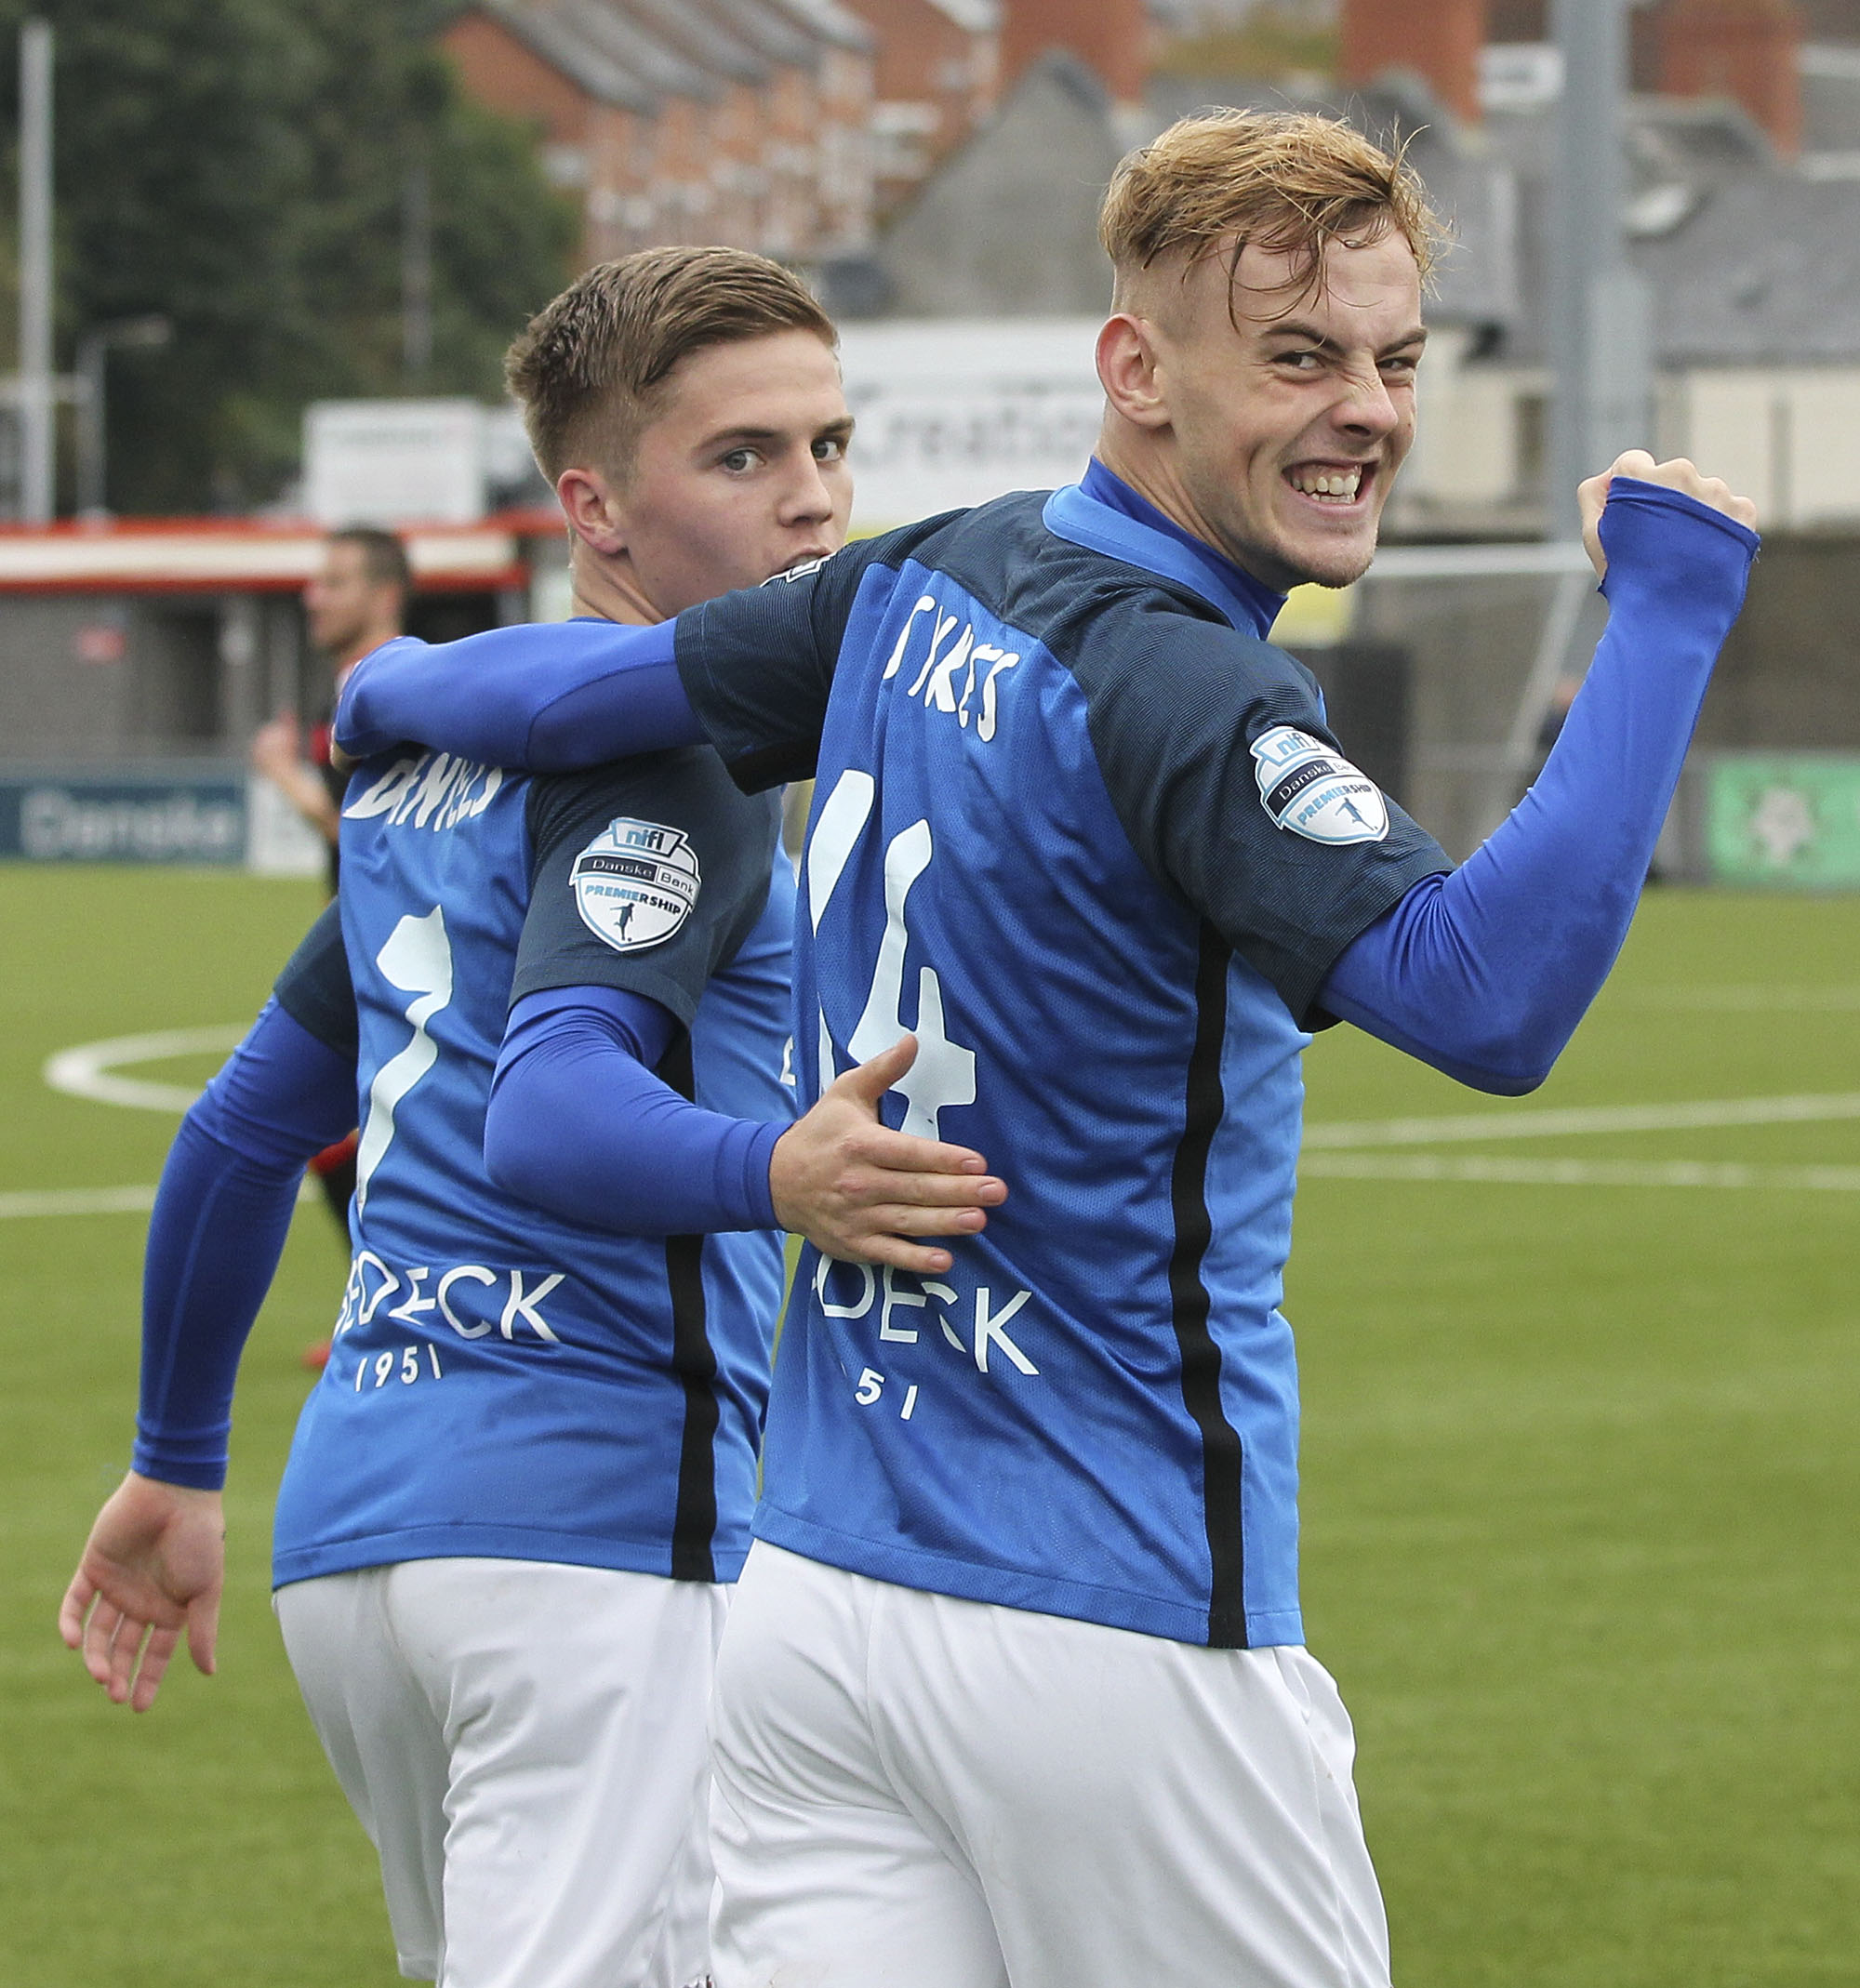 Glenavon Cruise to Victory at Seaview